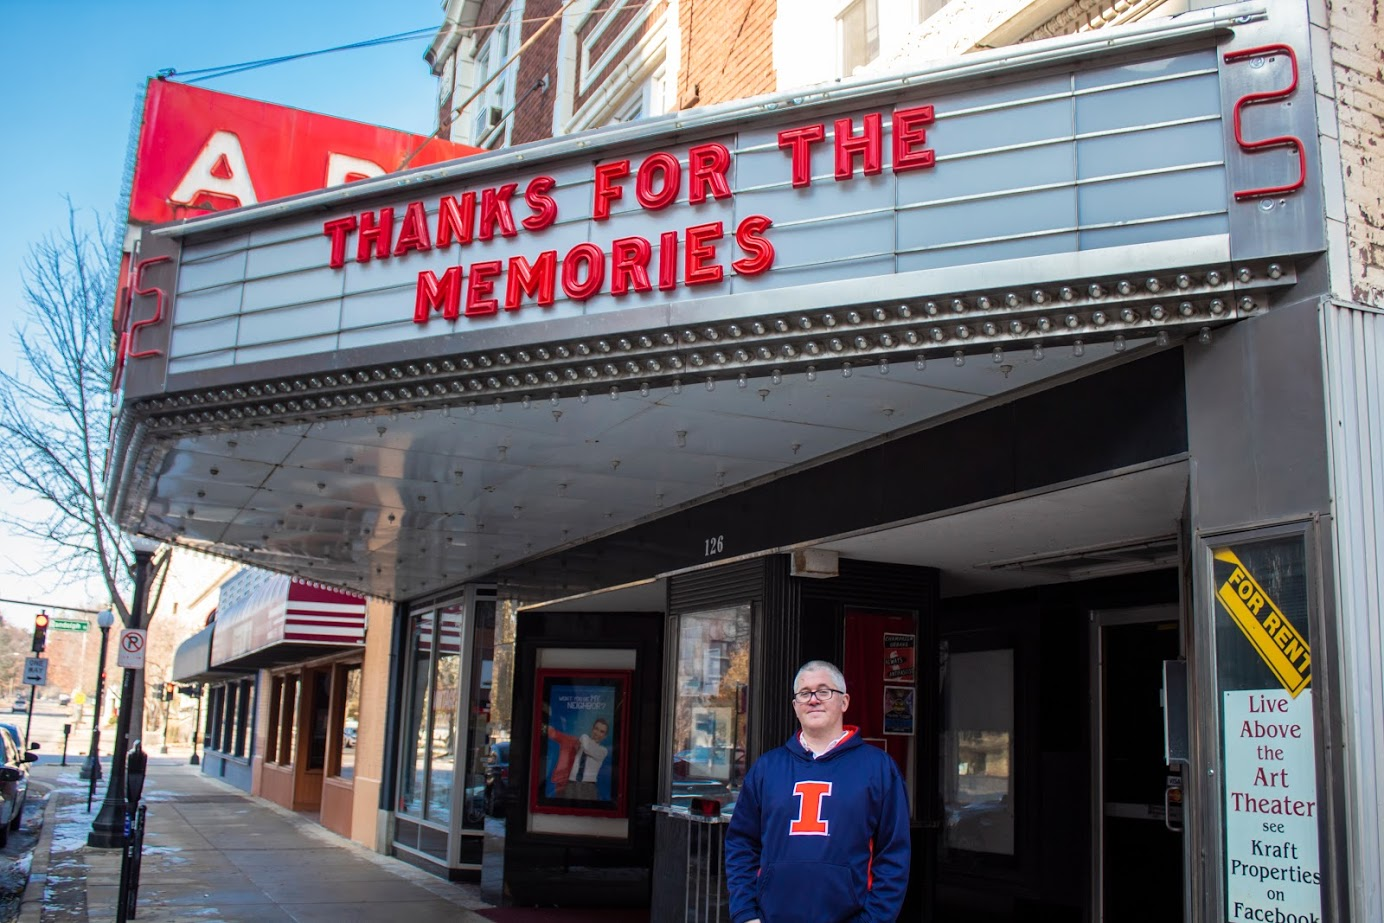 Landlord David Kraft stands outside of The Art Theater in Champaign on Saturday. The Art Film Foundation officially filed bankruptcy last week closely following the announcements of The Art Theater's closing.